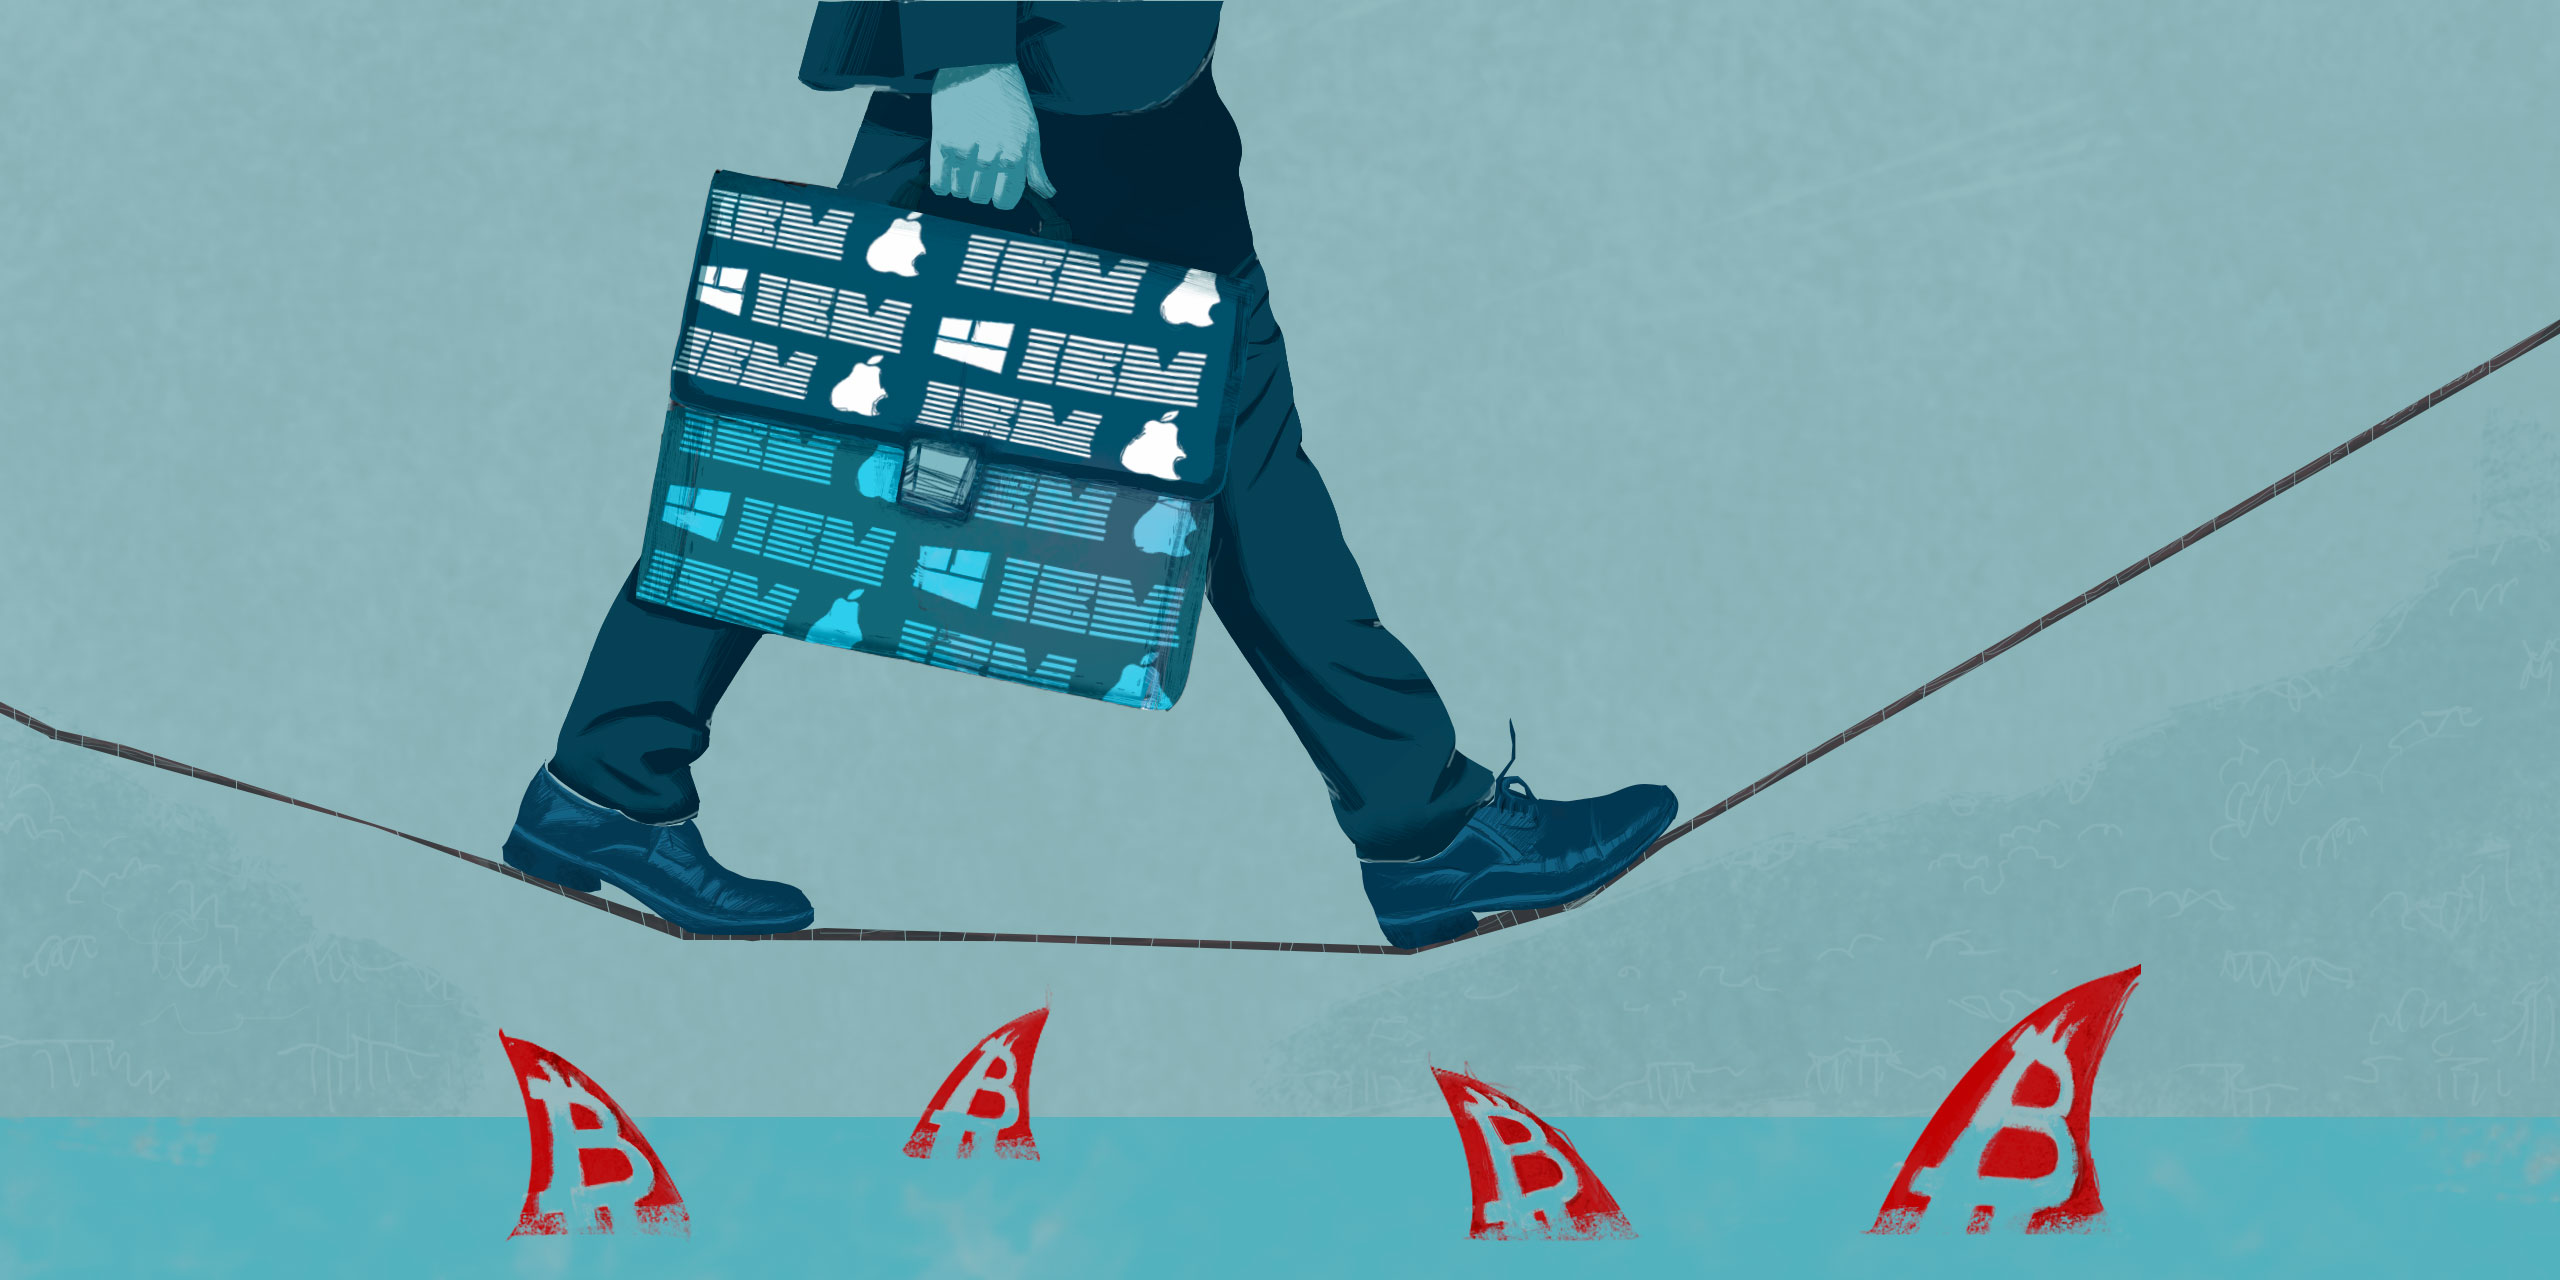 Institutional investors walk a delicate line between a fear to lose and a chance to boost their fortune